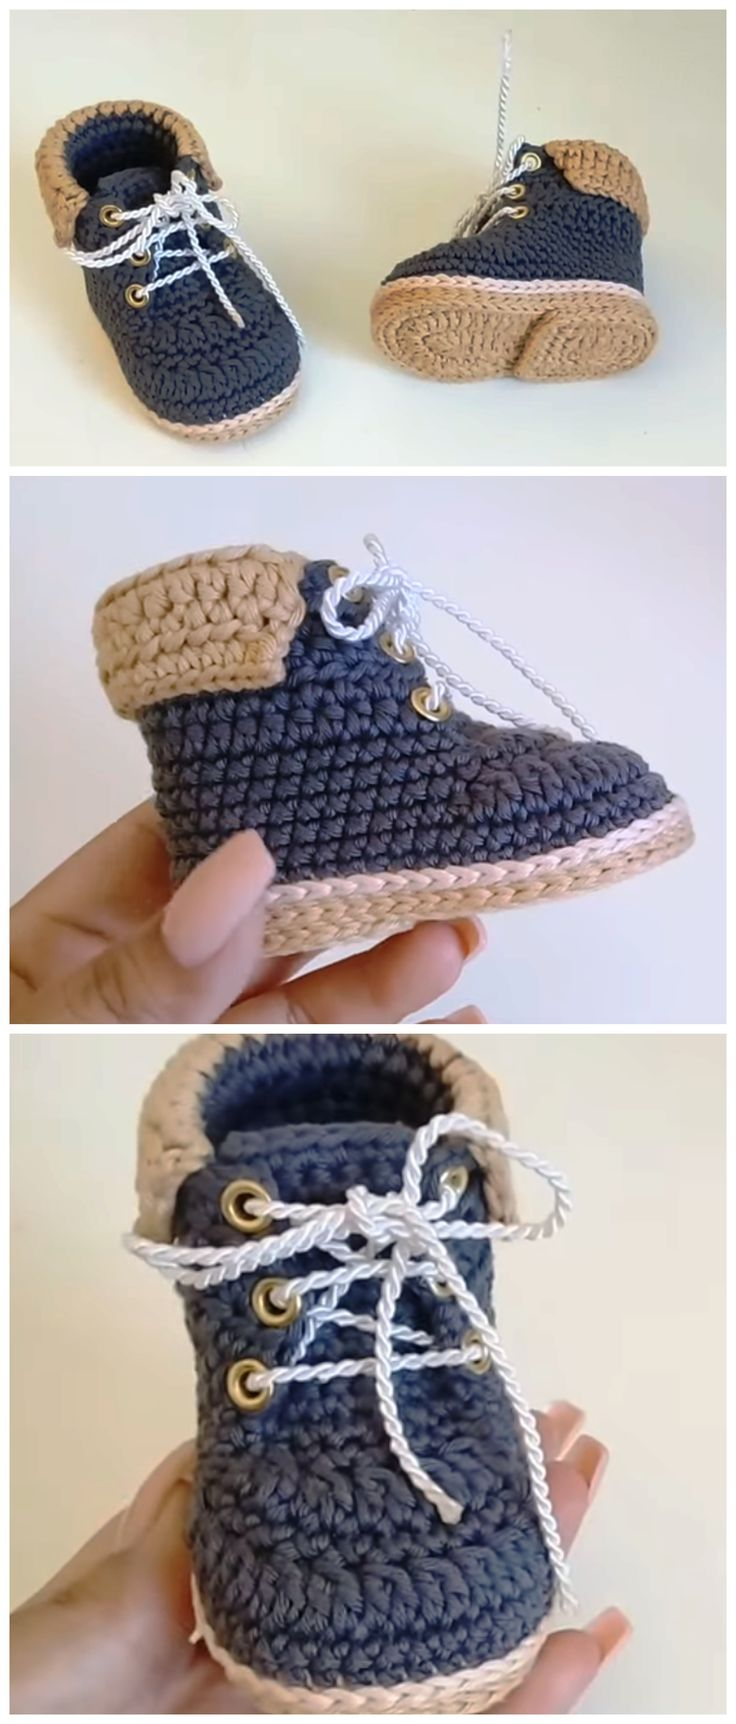 Crochet Baby Boots From 0 To 3 Months – Crochet Ideas